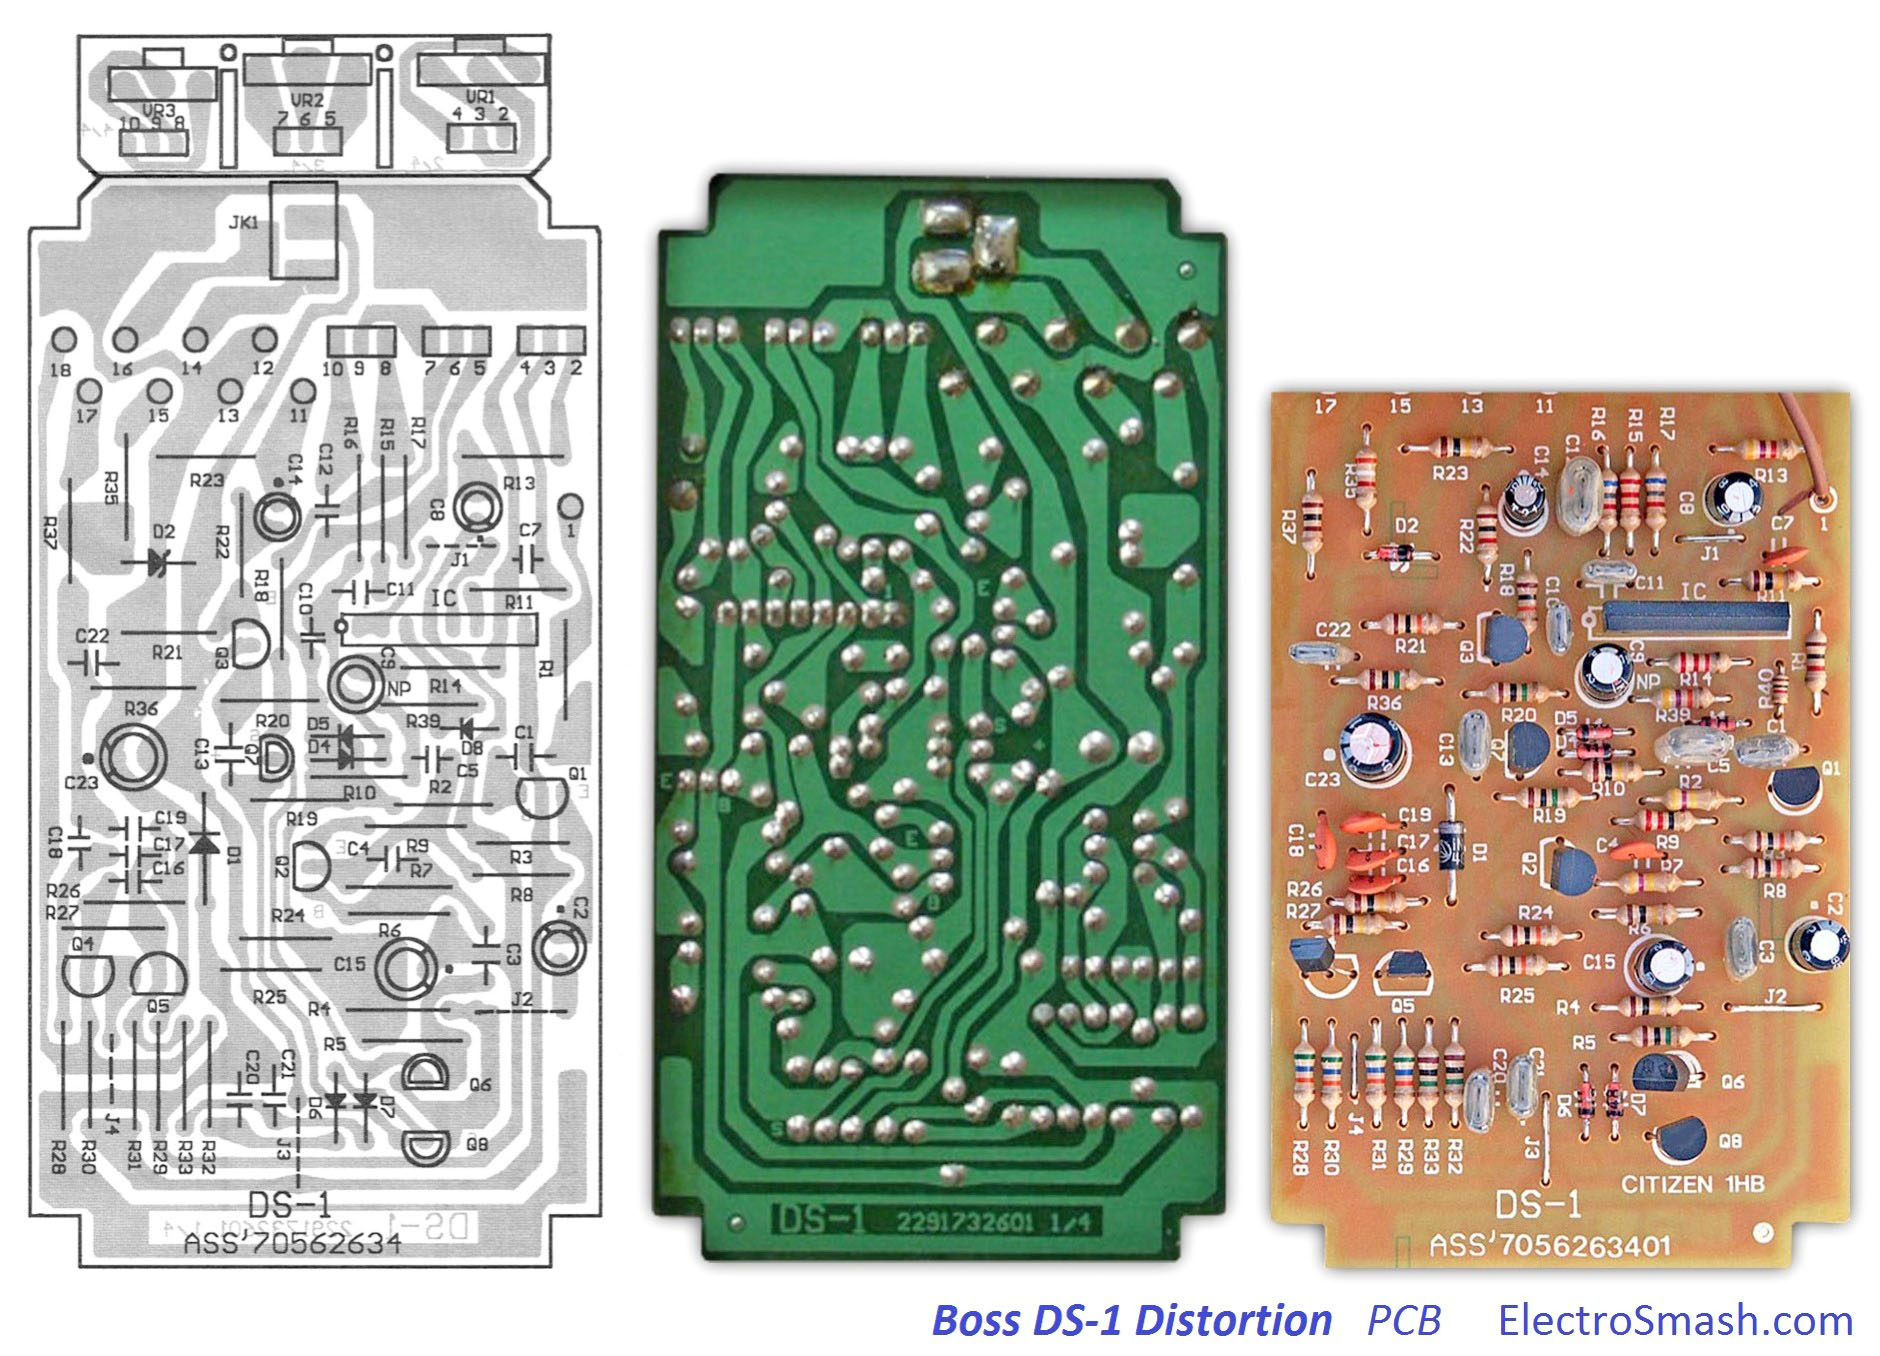 electrosmash boss ds1 distortion analysis boss ds1 distortion pcb small